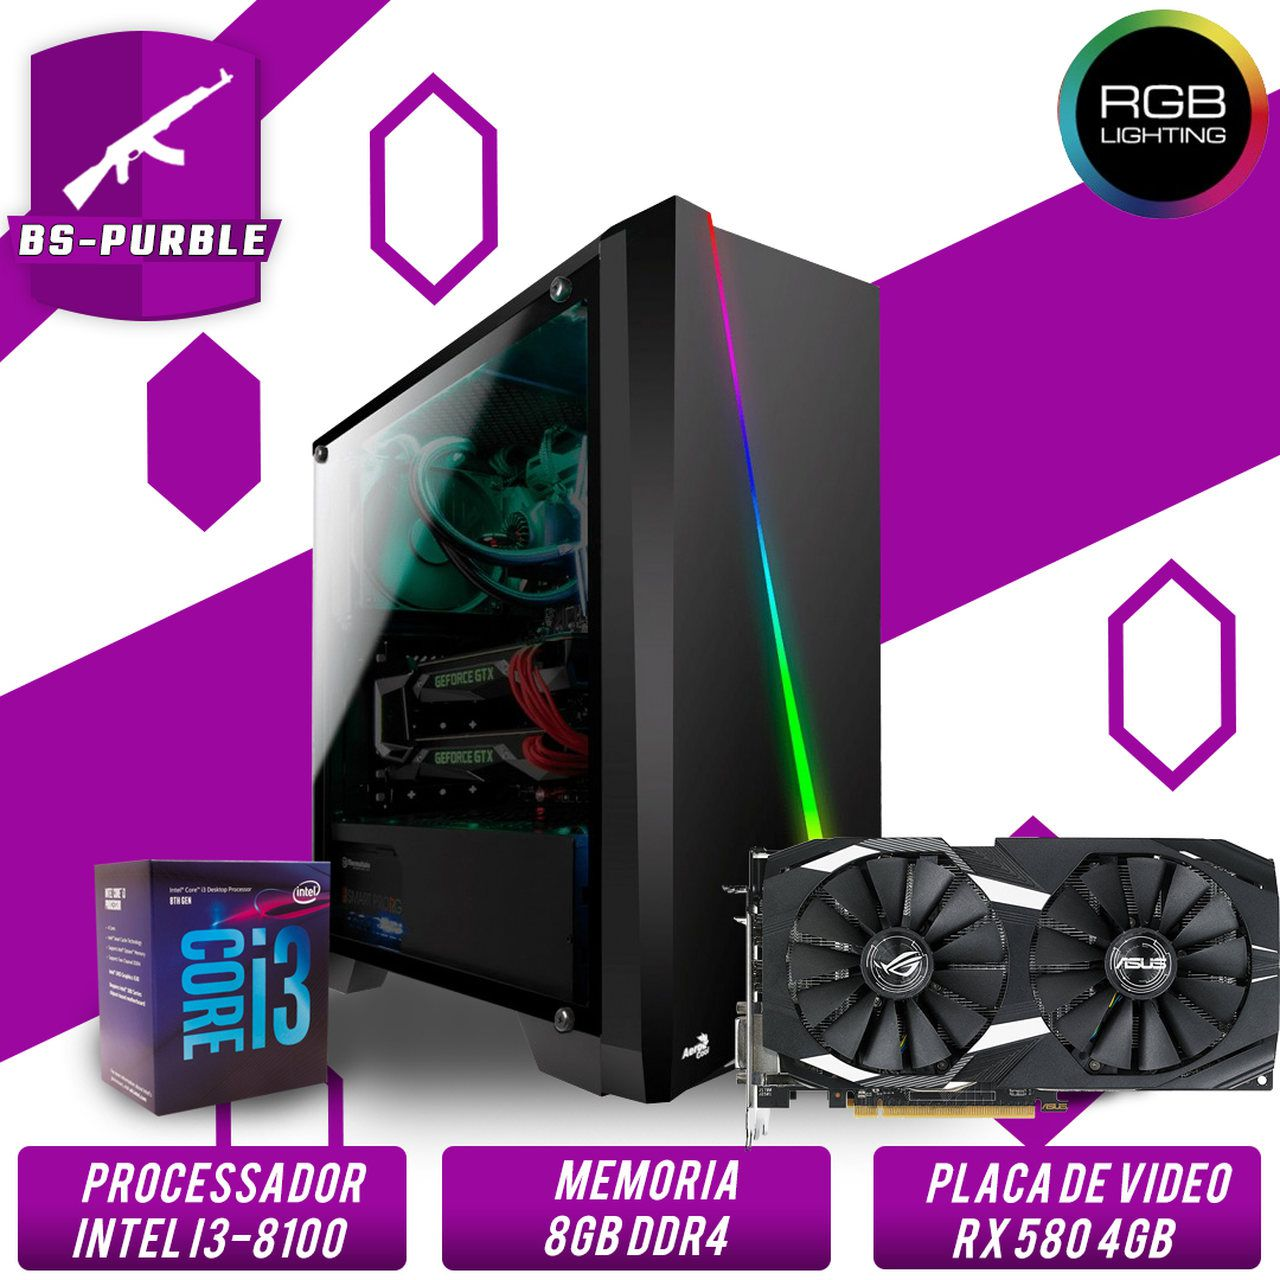 Bs Gamer Intel i3 8100, 8GB DDR4, HD 1TB, 500W, RX 580 4GB